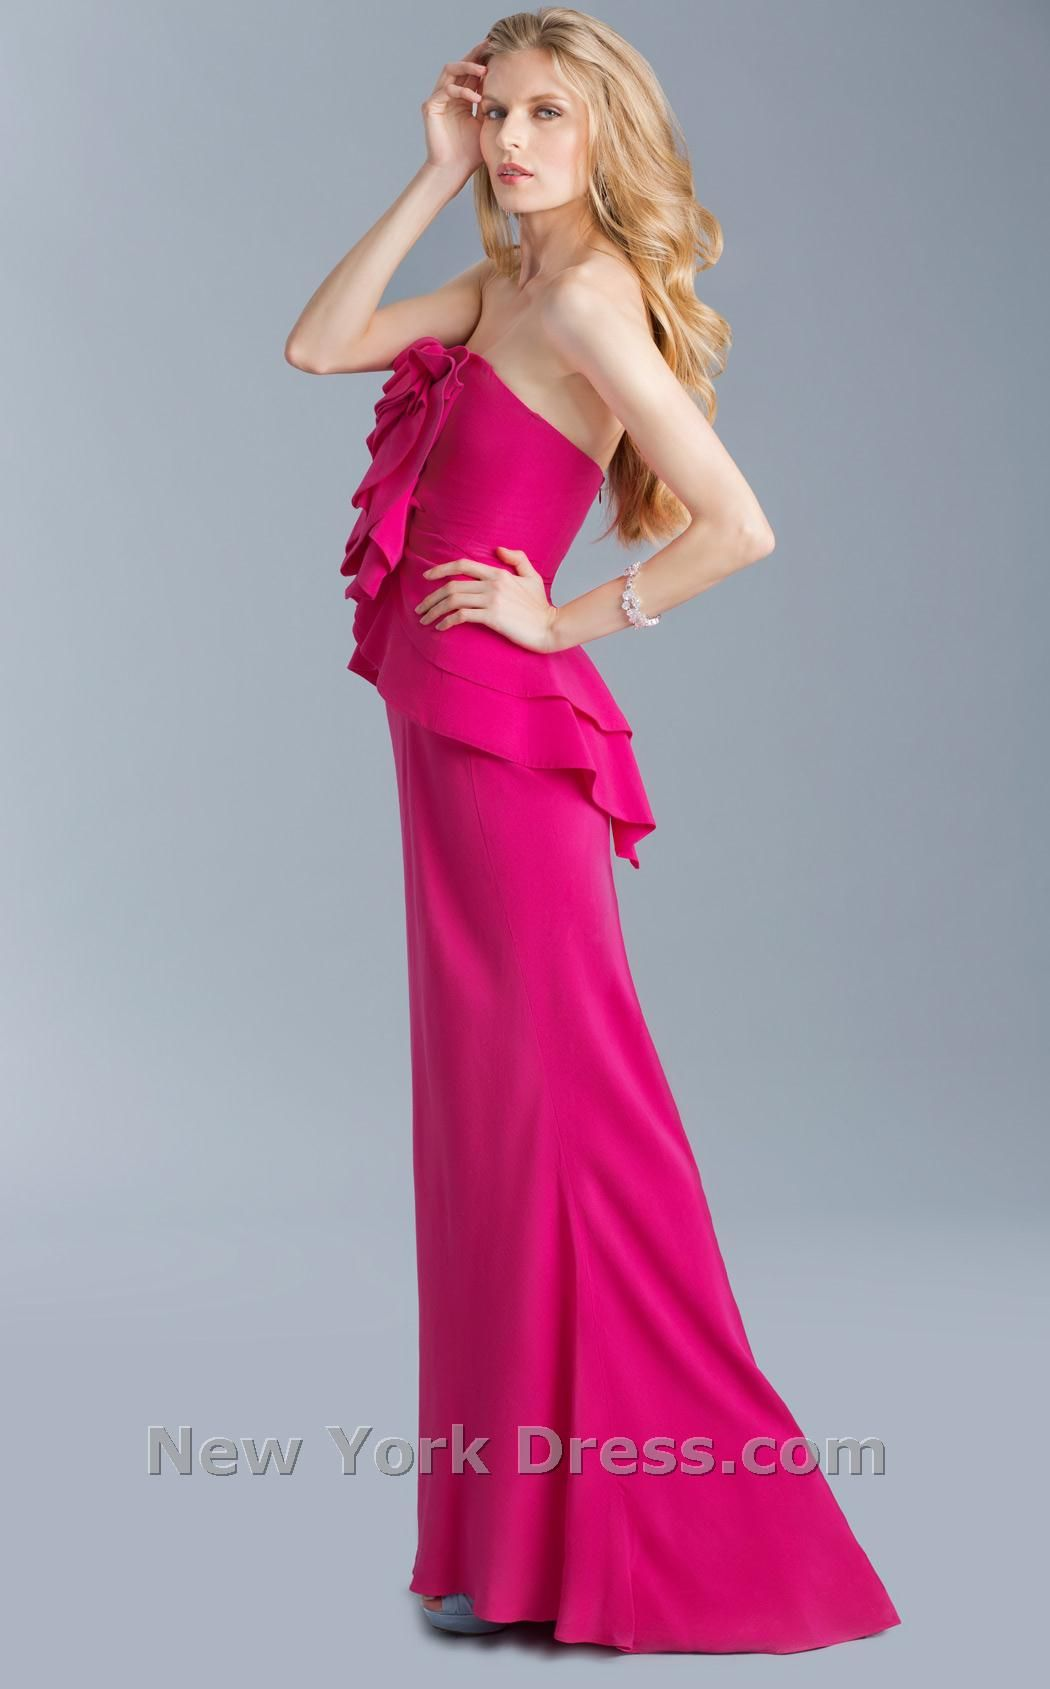 Textured Peplum Gown by ABS from newyorkdress.com - 39 people liked ...